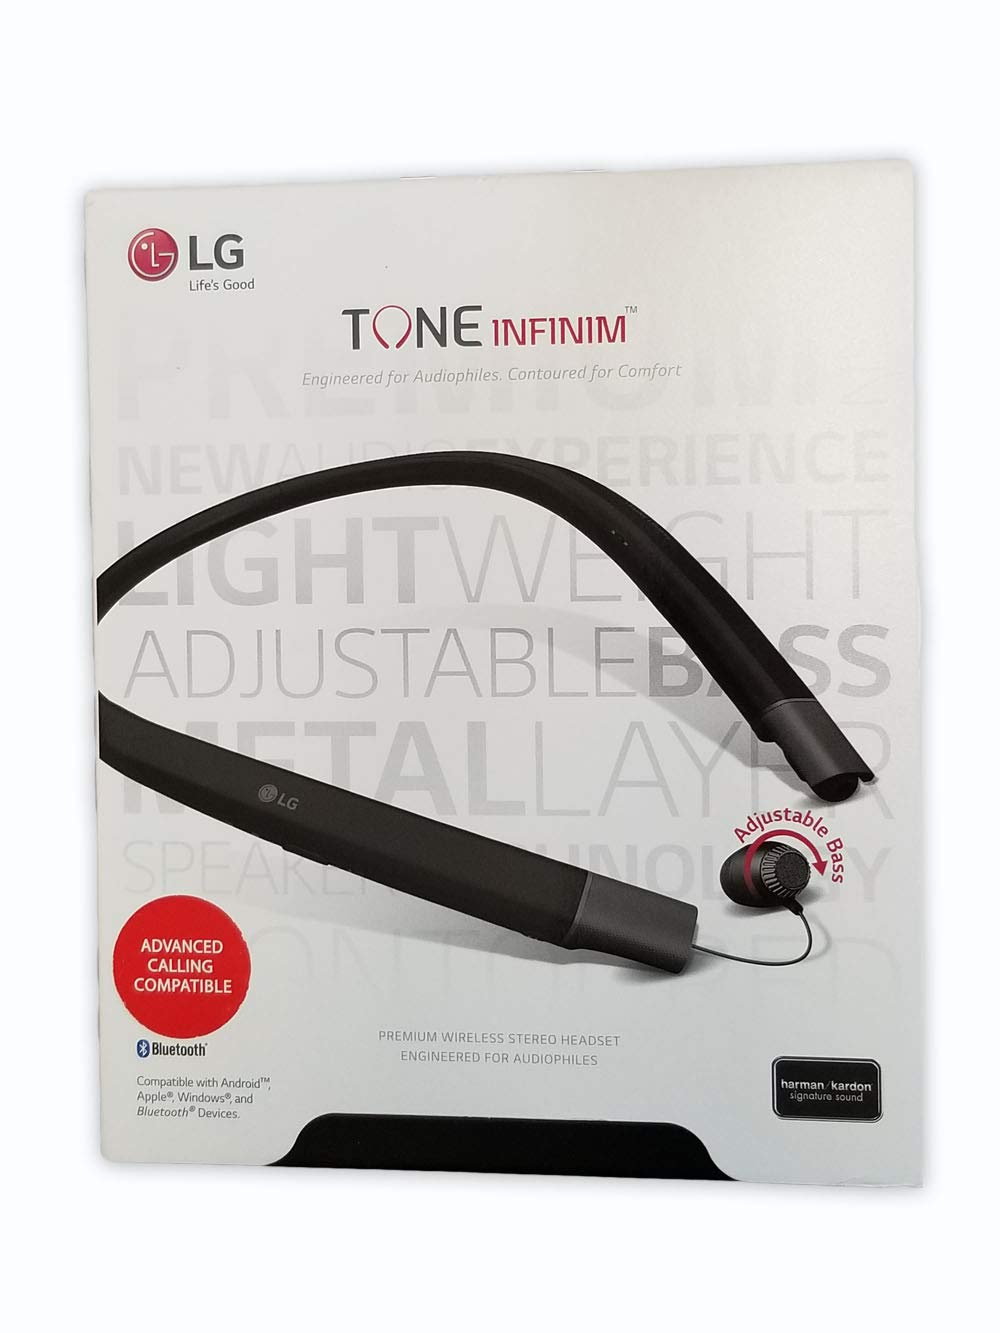 Lg Tone Infinim Hbs 920 Wireless Stereo Headset Black Buy Online In Cambodia Lg Products In Cambodia See Prices Reviews And Free Delivery Over 27 000 Desertcart